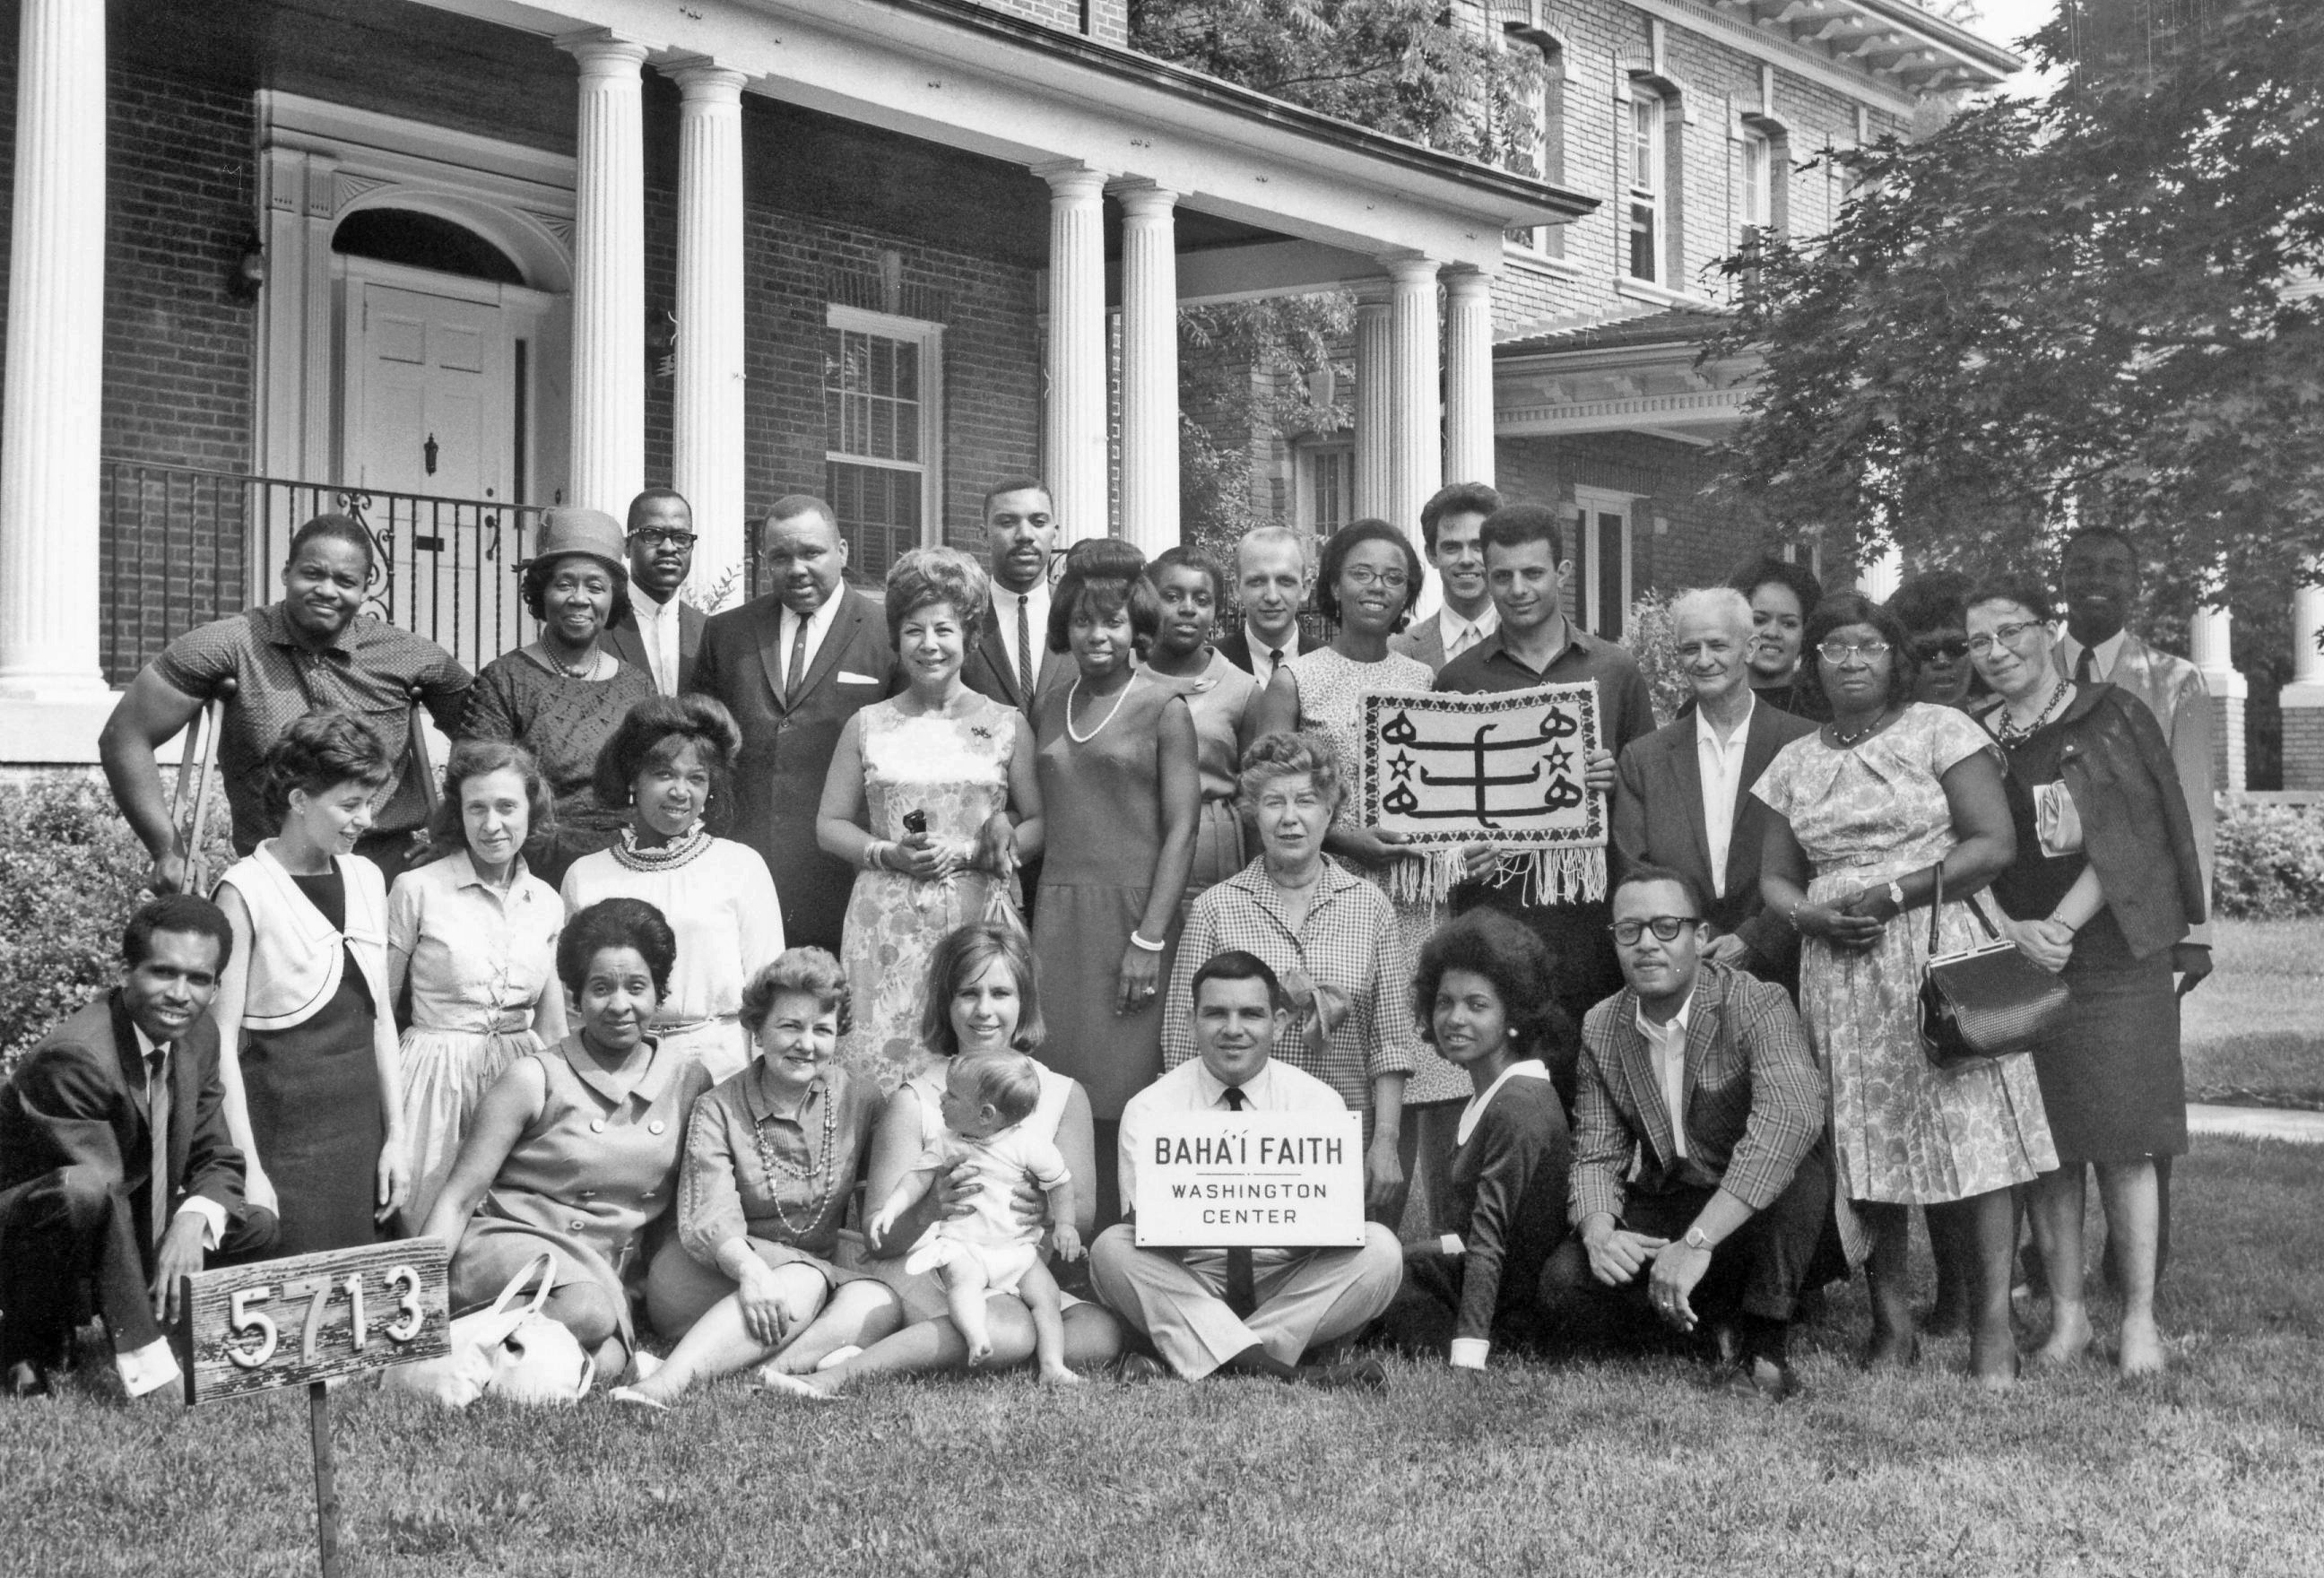 Members, Washington DC Baha'i Community, 1966